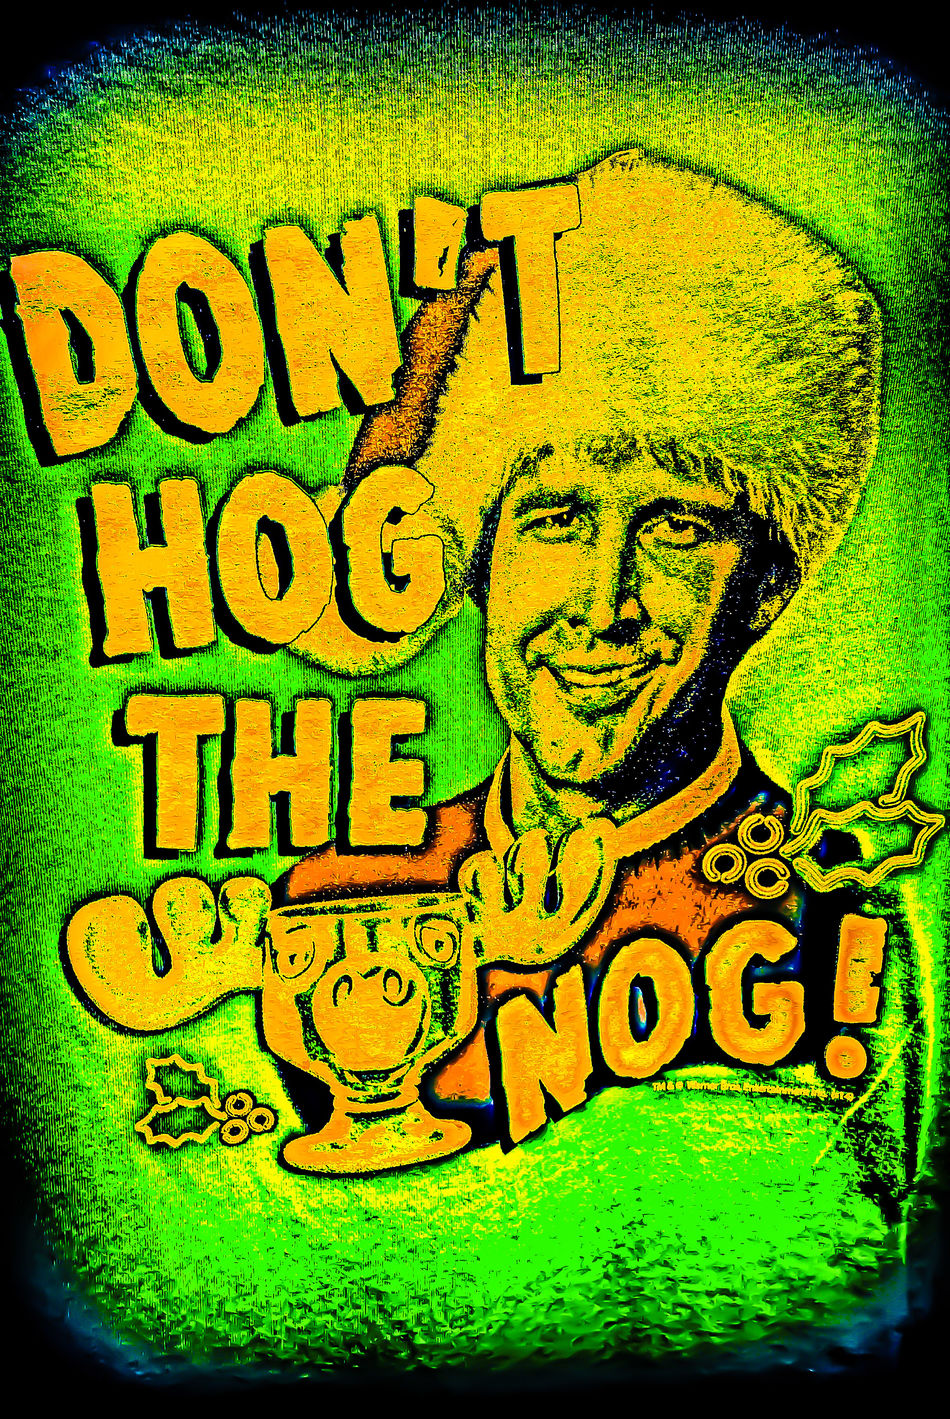 Found this on a t-shirt while shopping at the mall this past weekend. Eye4photograghy Getting Inspired Egg Nog Enjoying Life Anything for a sale.!!